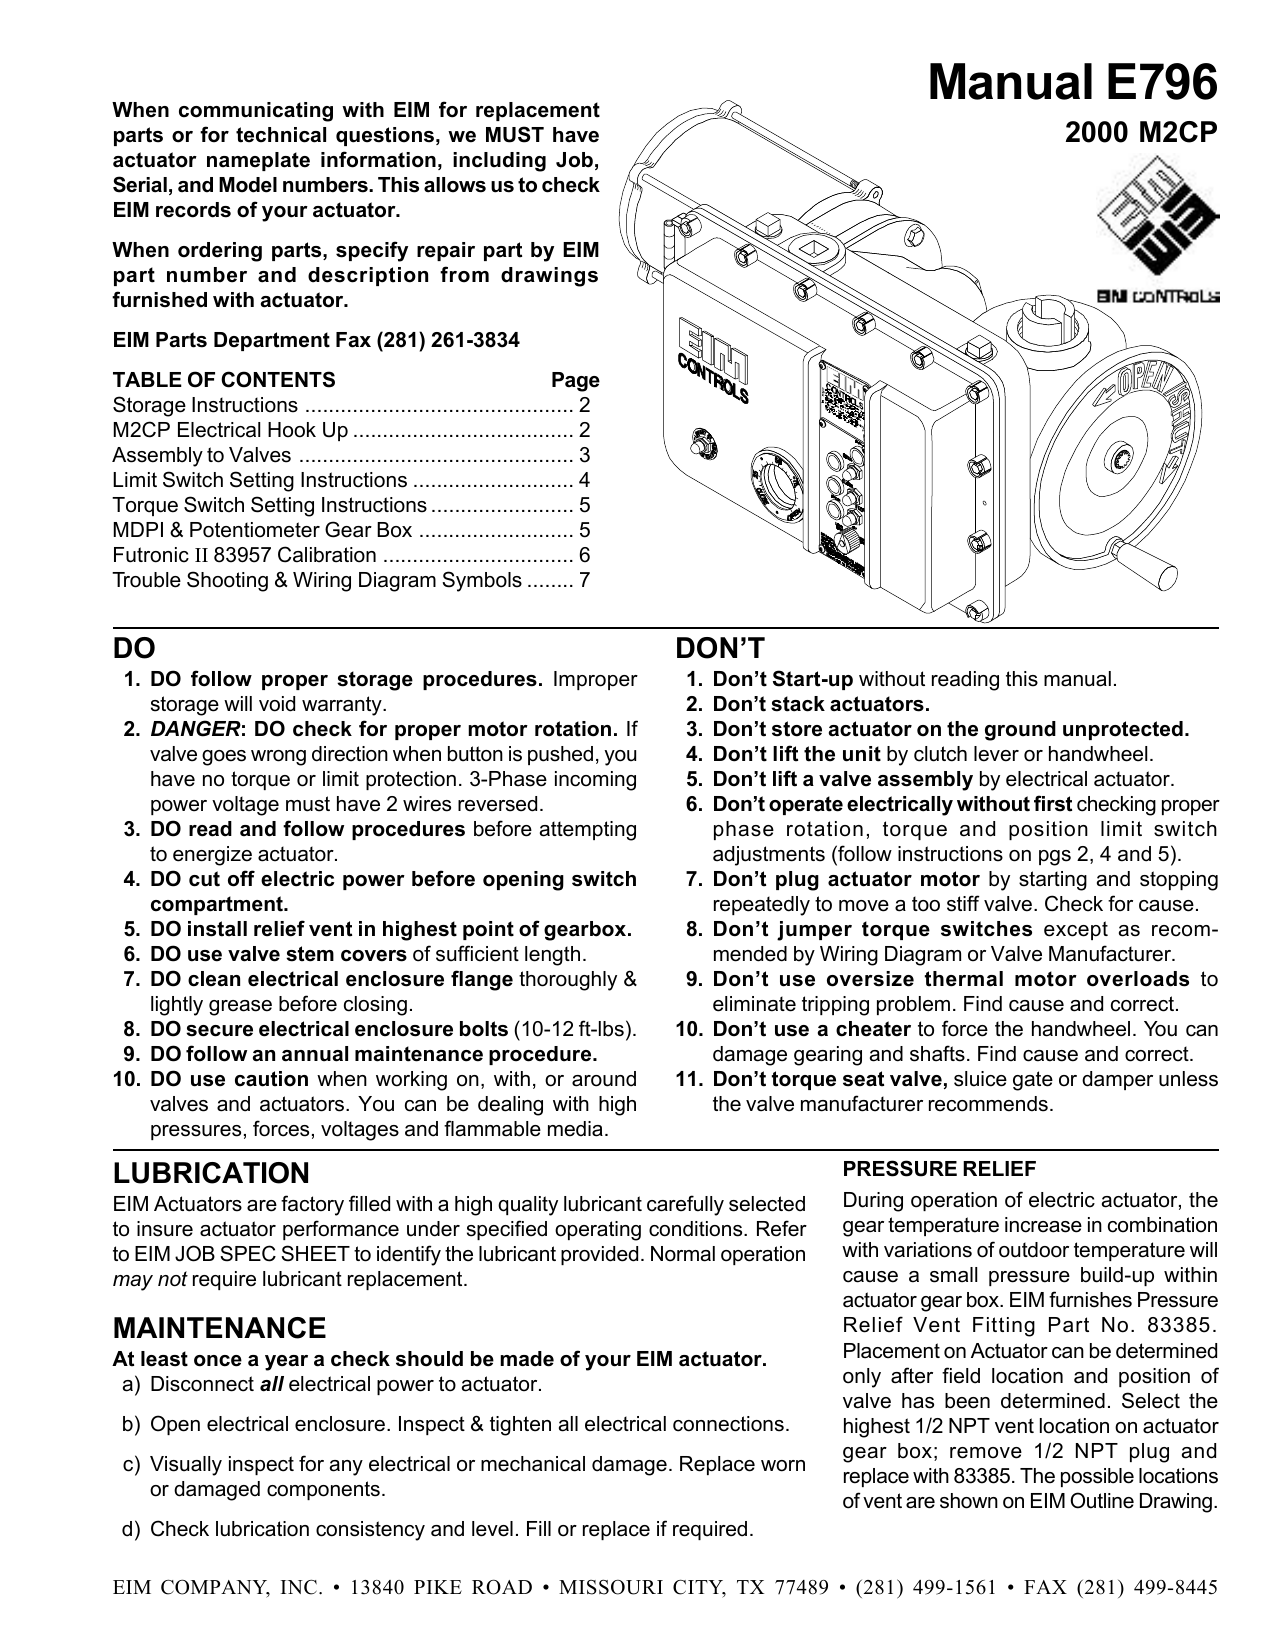 018642467_1 d6a38c79dbcedaa4a2705c4193dee3a5 series 2000 m2cp emerson process management eim m2cp actuator wiring diagram at n-0.co